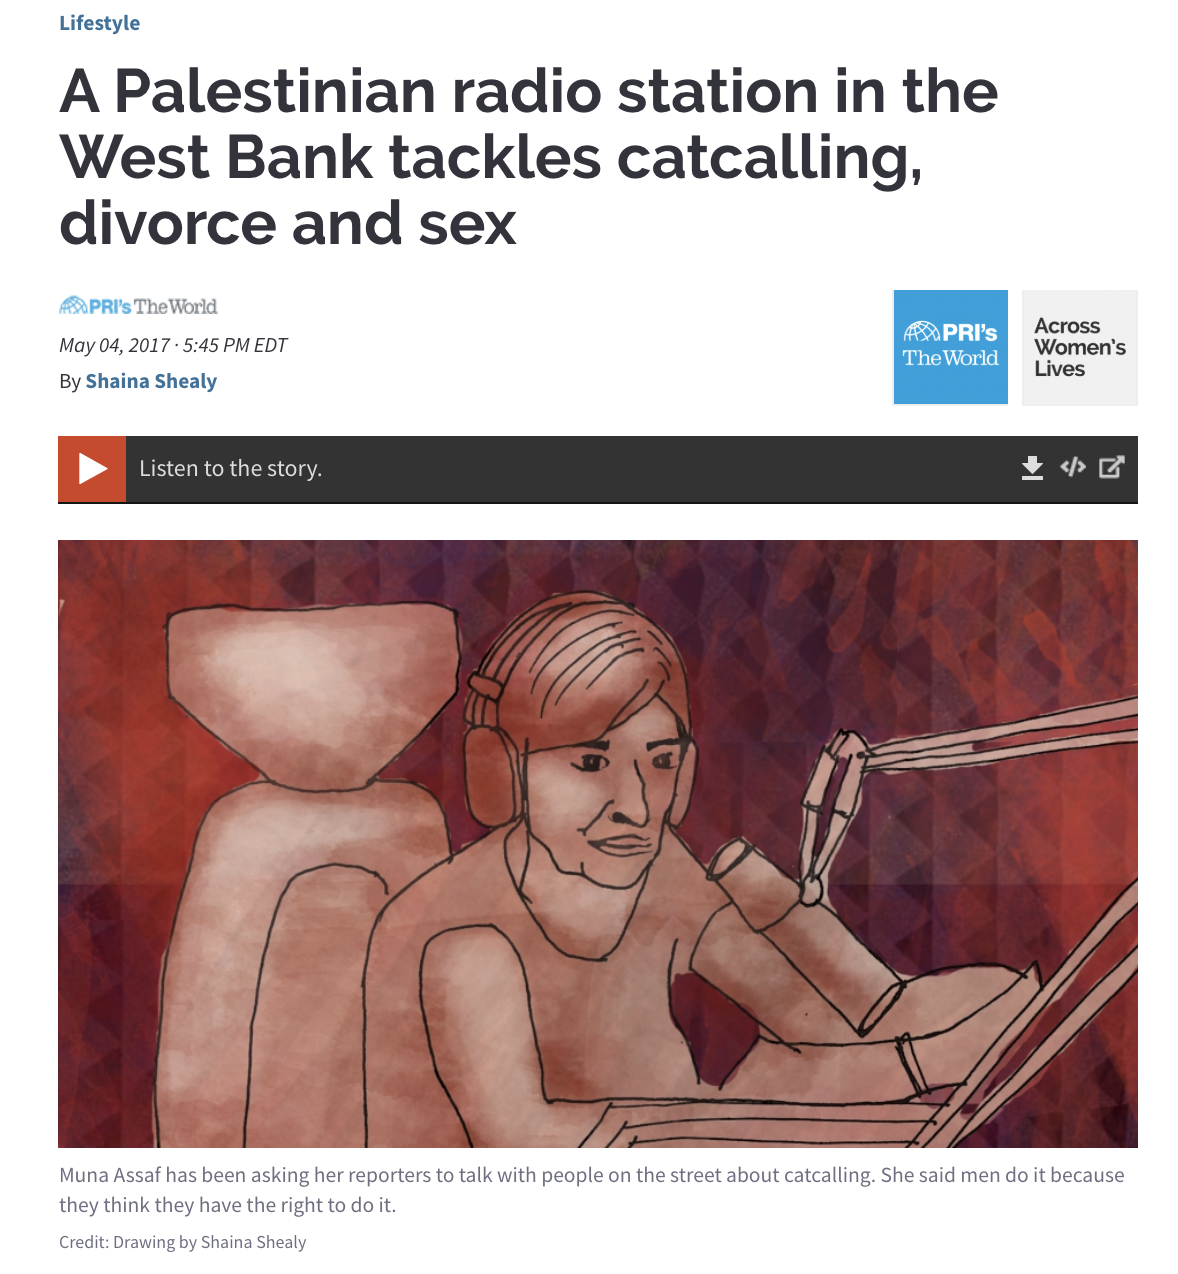 Palestinian radio station tackles cat calling, divorce and sex